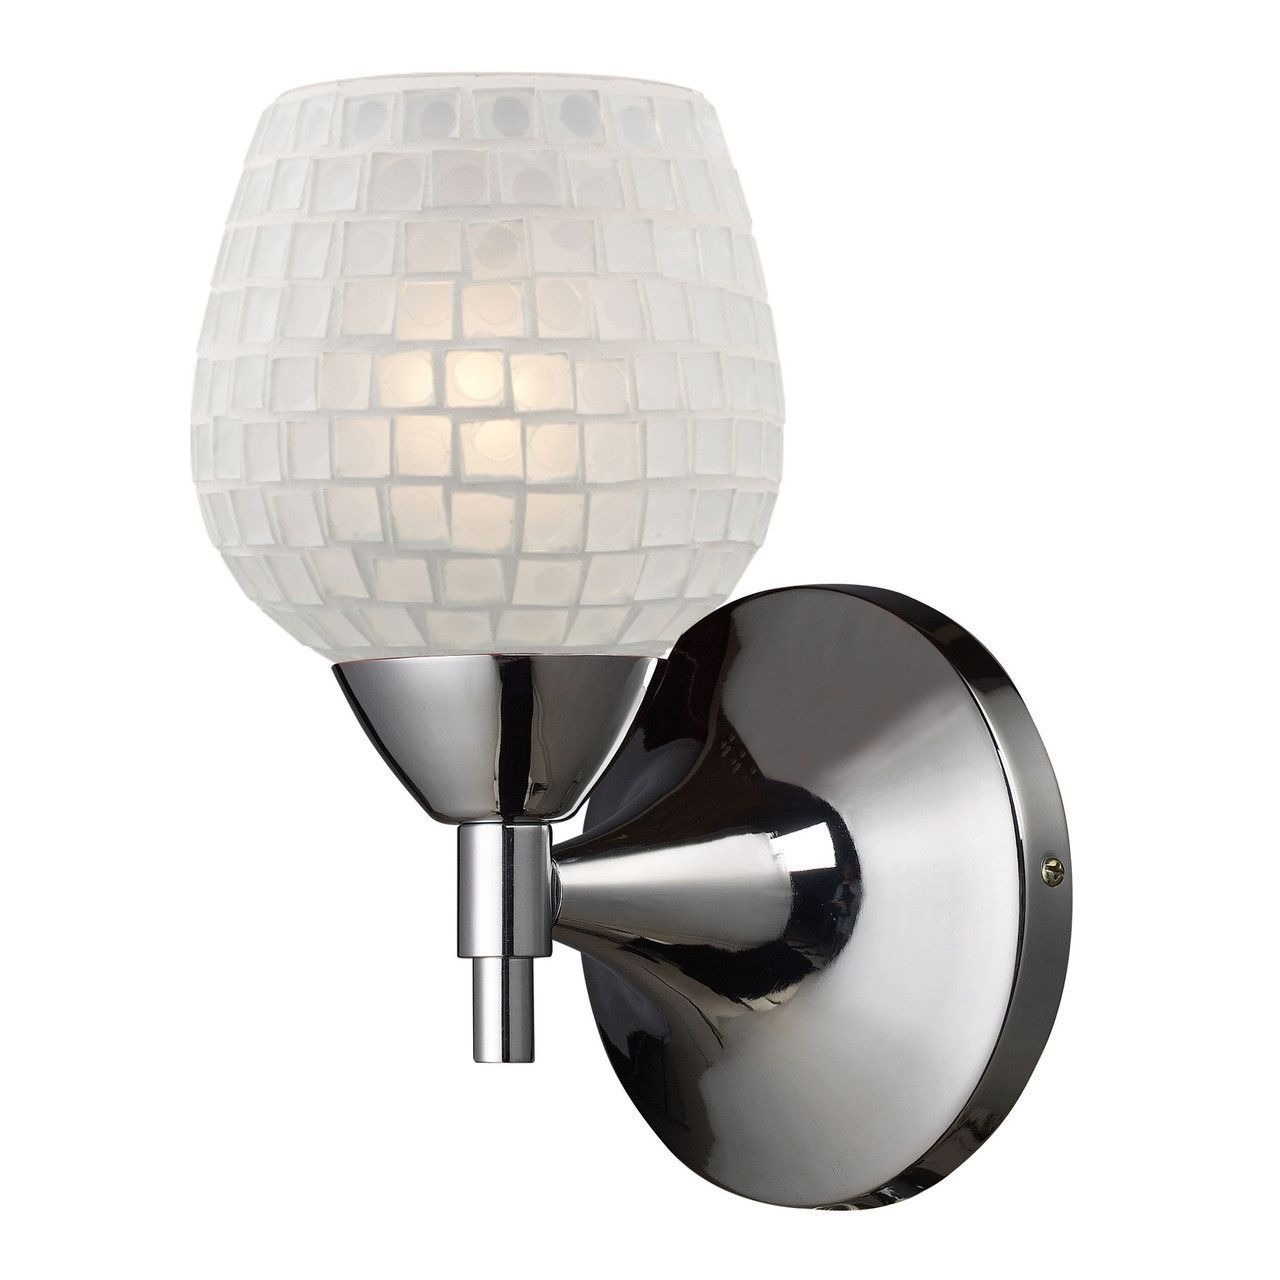 Celina 1 Light Sconce In Polished Chrome And White 10150/1PC-WHT